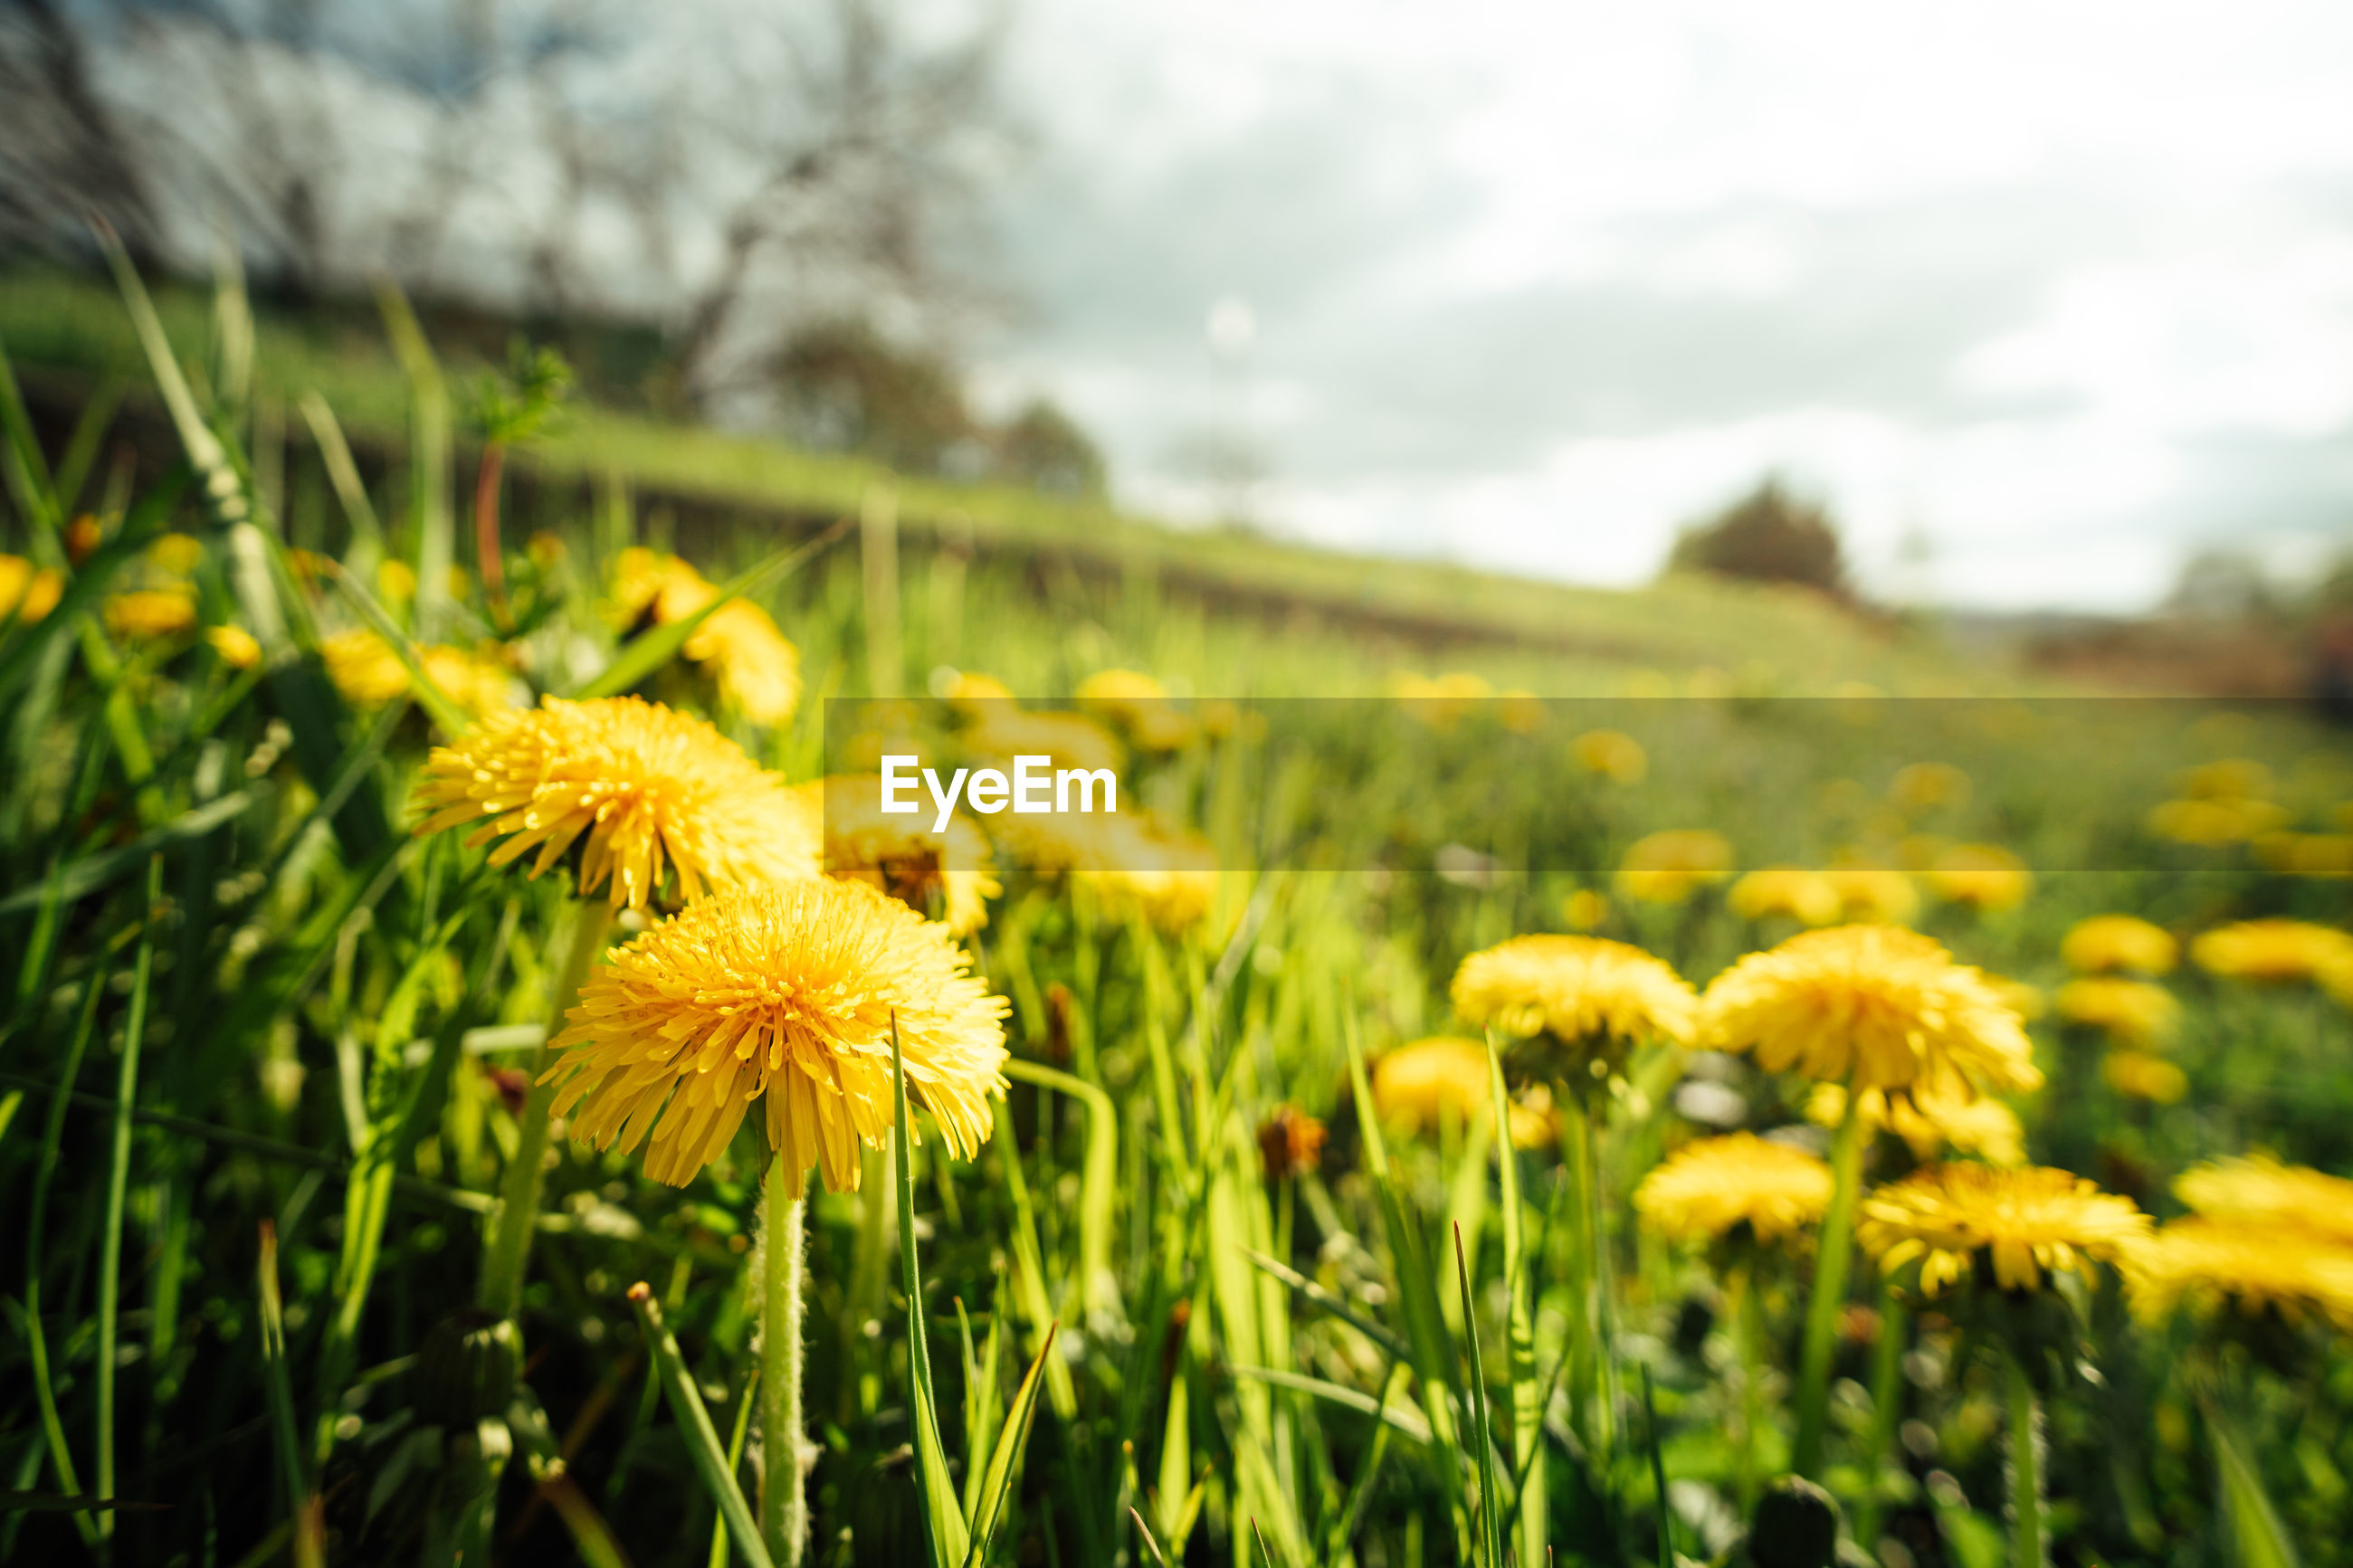 plant, flower, flowering plant, yellow, beauty in nature, nature, field, grass, freshness, meadow, landscape, sky, growth, prairie, land, rural scene, cloud, environment, green, fragility, springtime, no people, flower head, focus on foreground, agriculture, close-up, grassland, lawn, sunlight, outdoors, day, blossom, inflorescence, tranquility, summer, non-urban scene, scenics - nature, dandelion, plain, wildflower, selective focus, crop, vibrant color, farm, tranquil scene, macro photography, botany